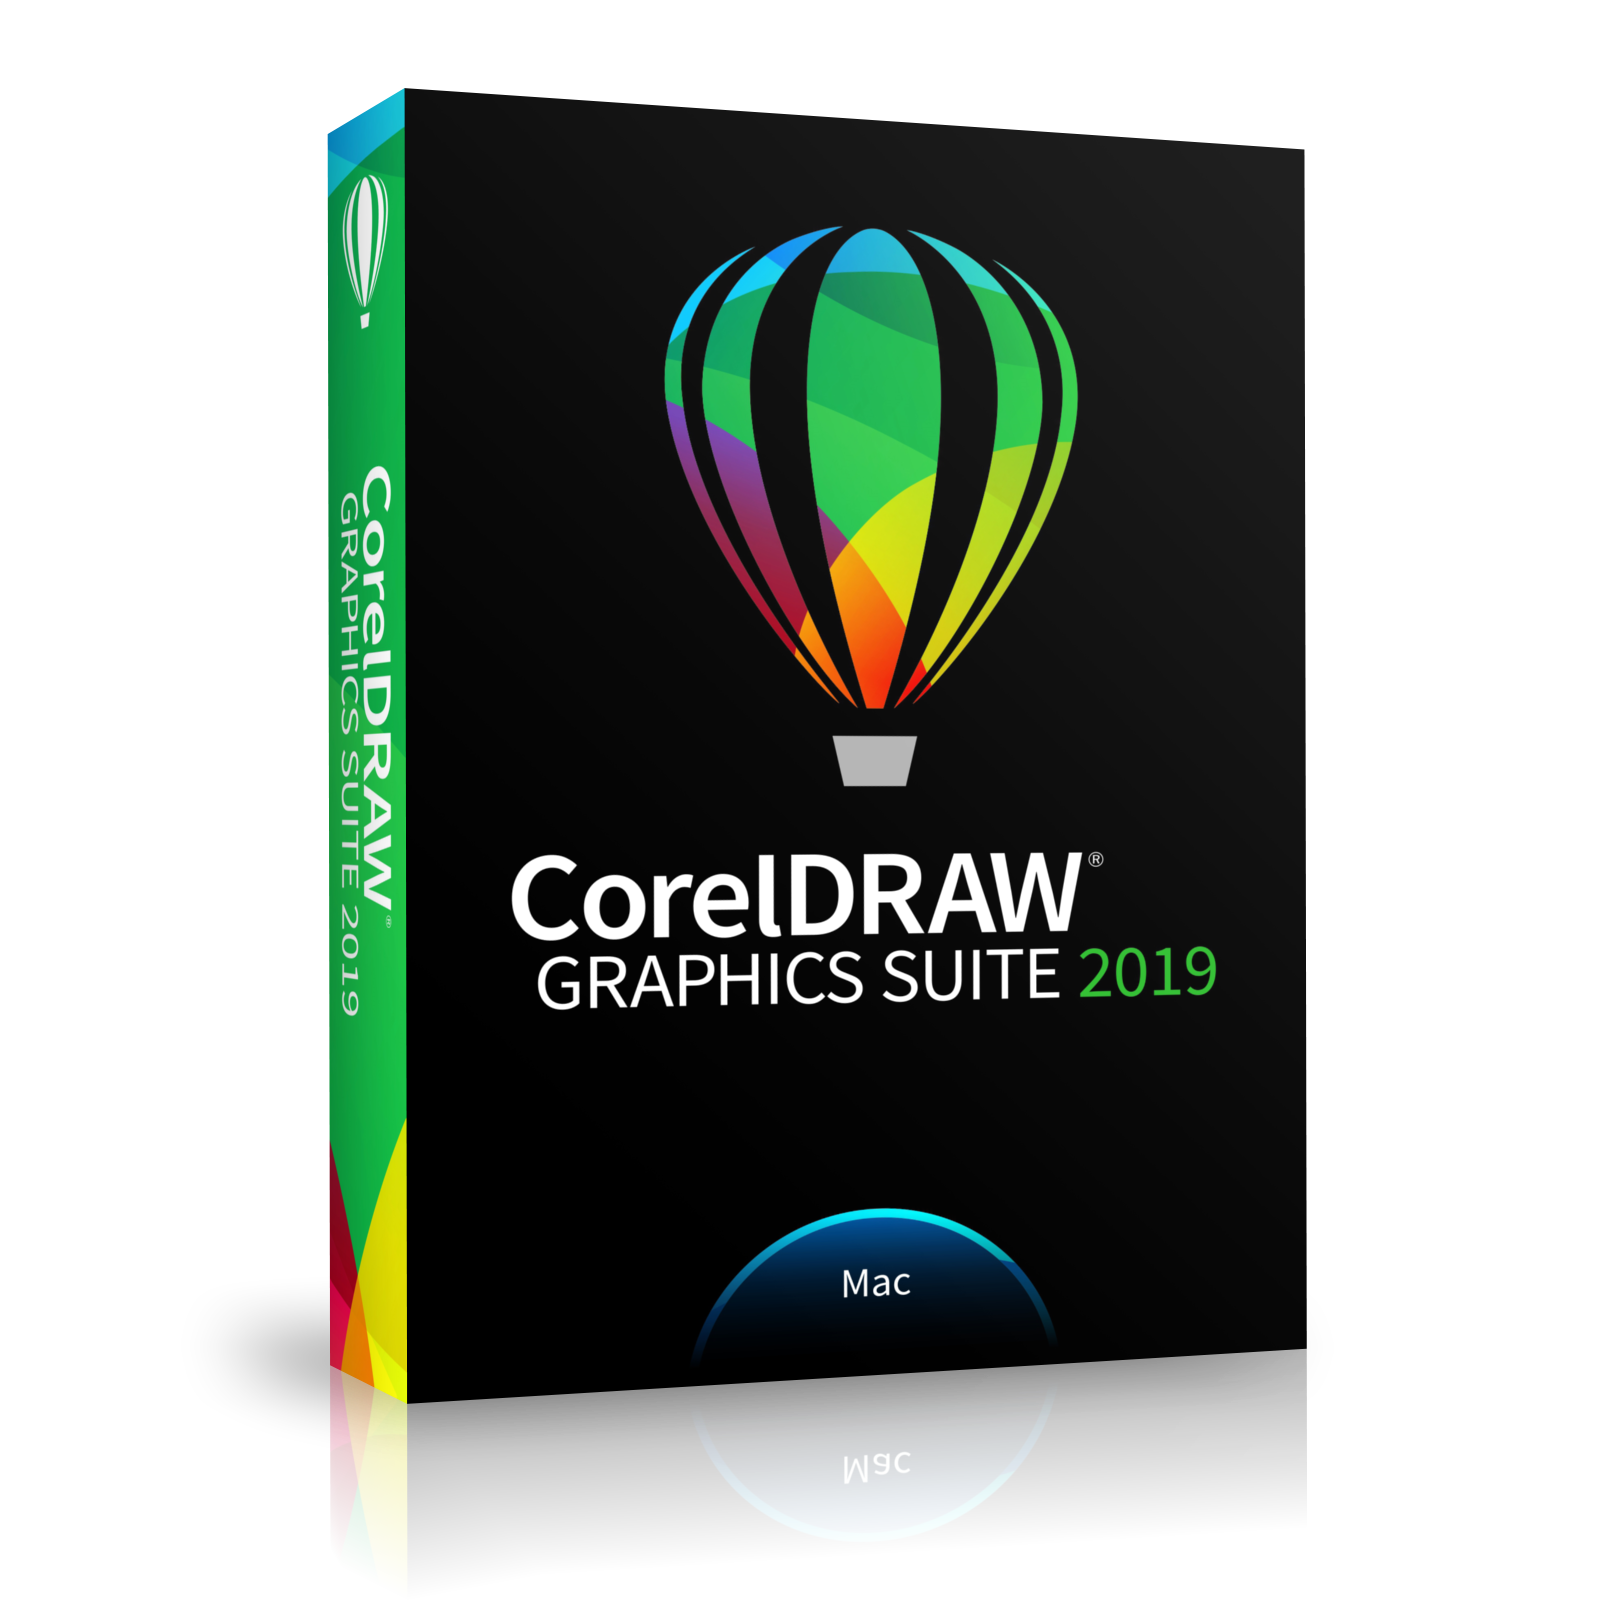 CorelDRAW Graphics Suite 2019 Mac (box) CZ